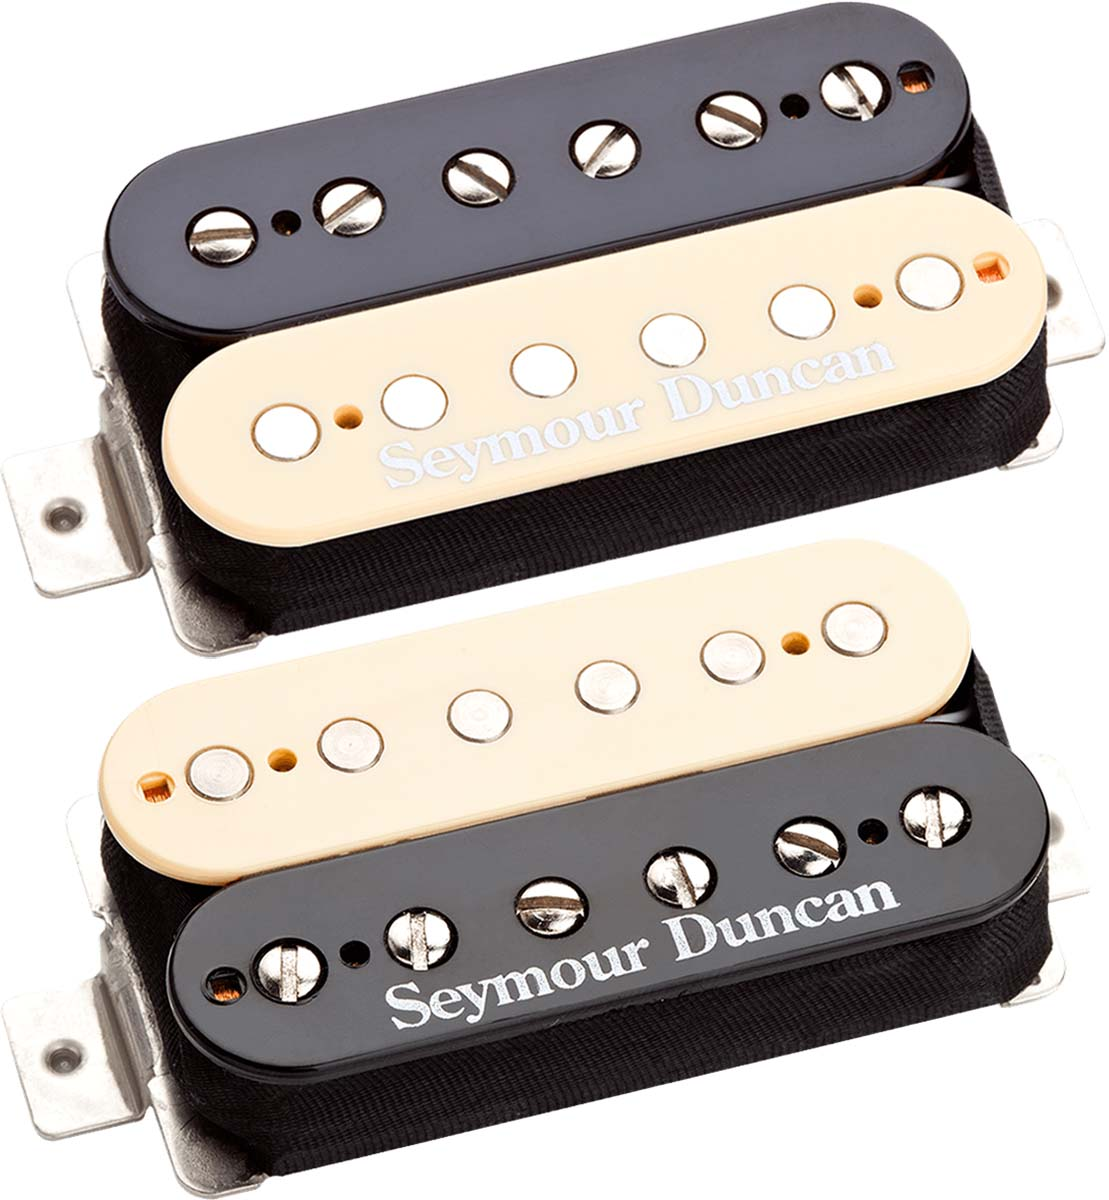 Seymour Duncan Hot Rodded Humbucker Set, SH-2n Neck and SH-4 JB Bridge on